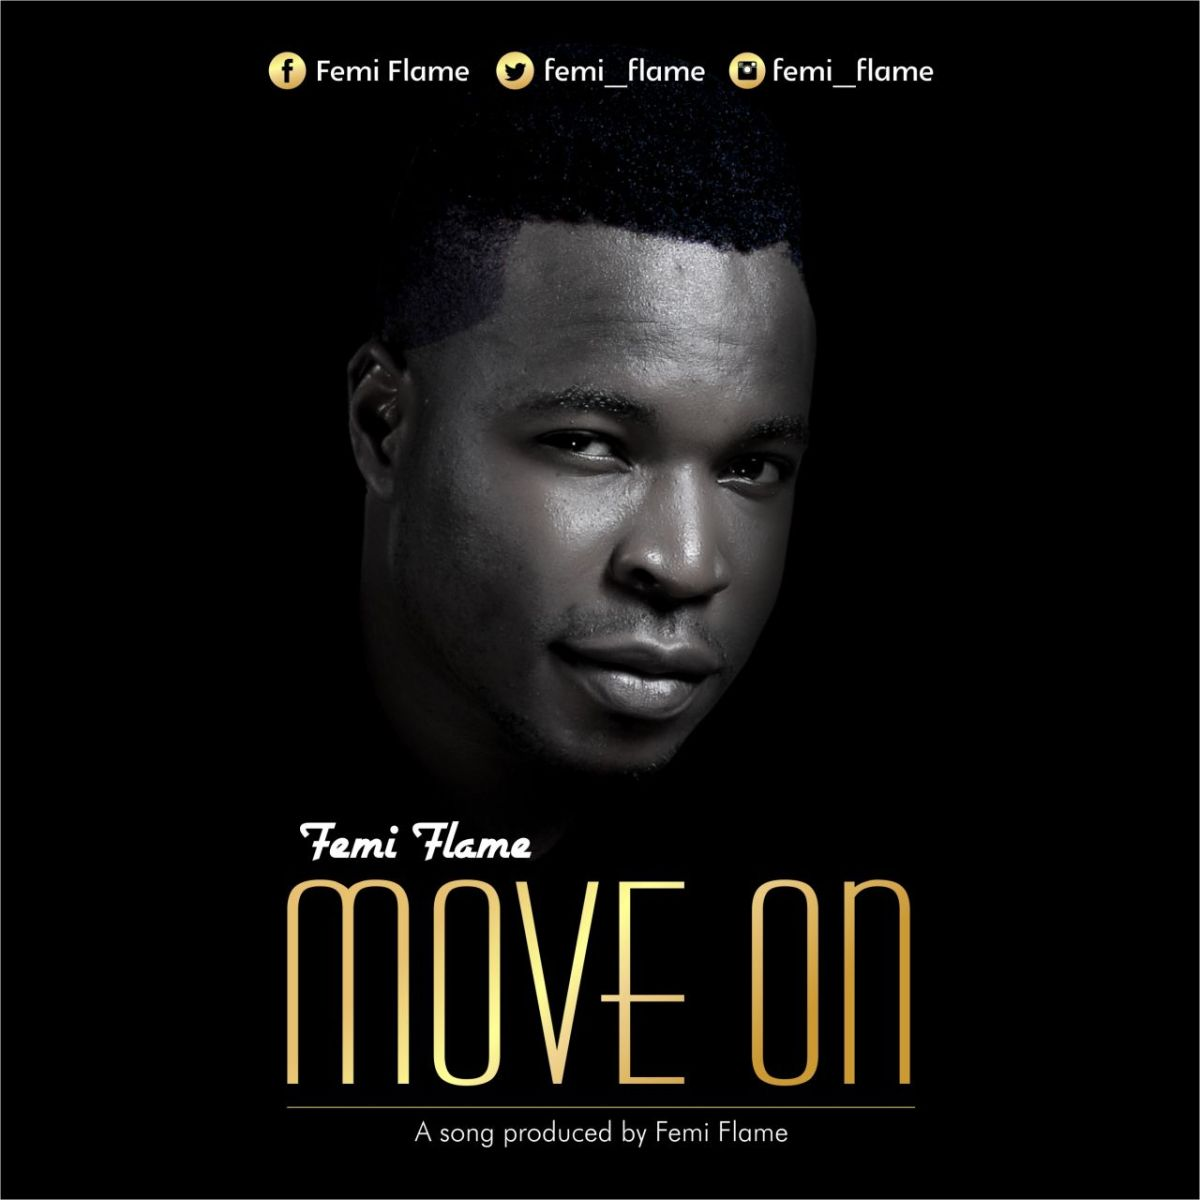 #Music : Move On - Femi flame {@femi_flame} || cc : @Gzenter10ment